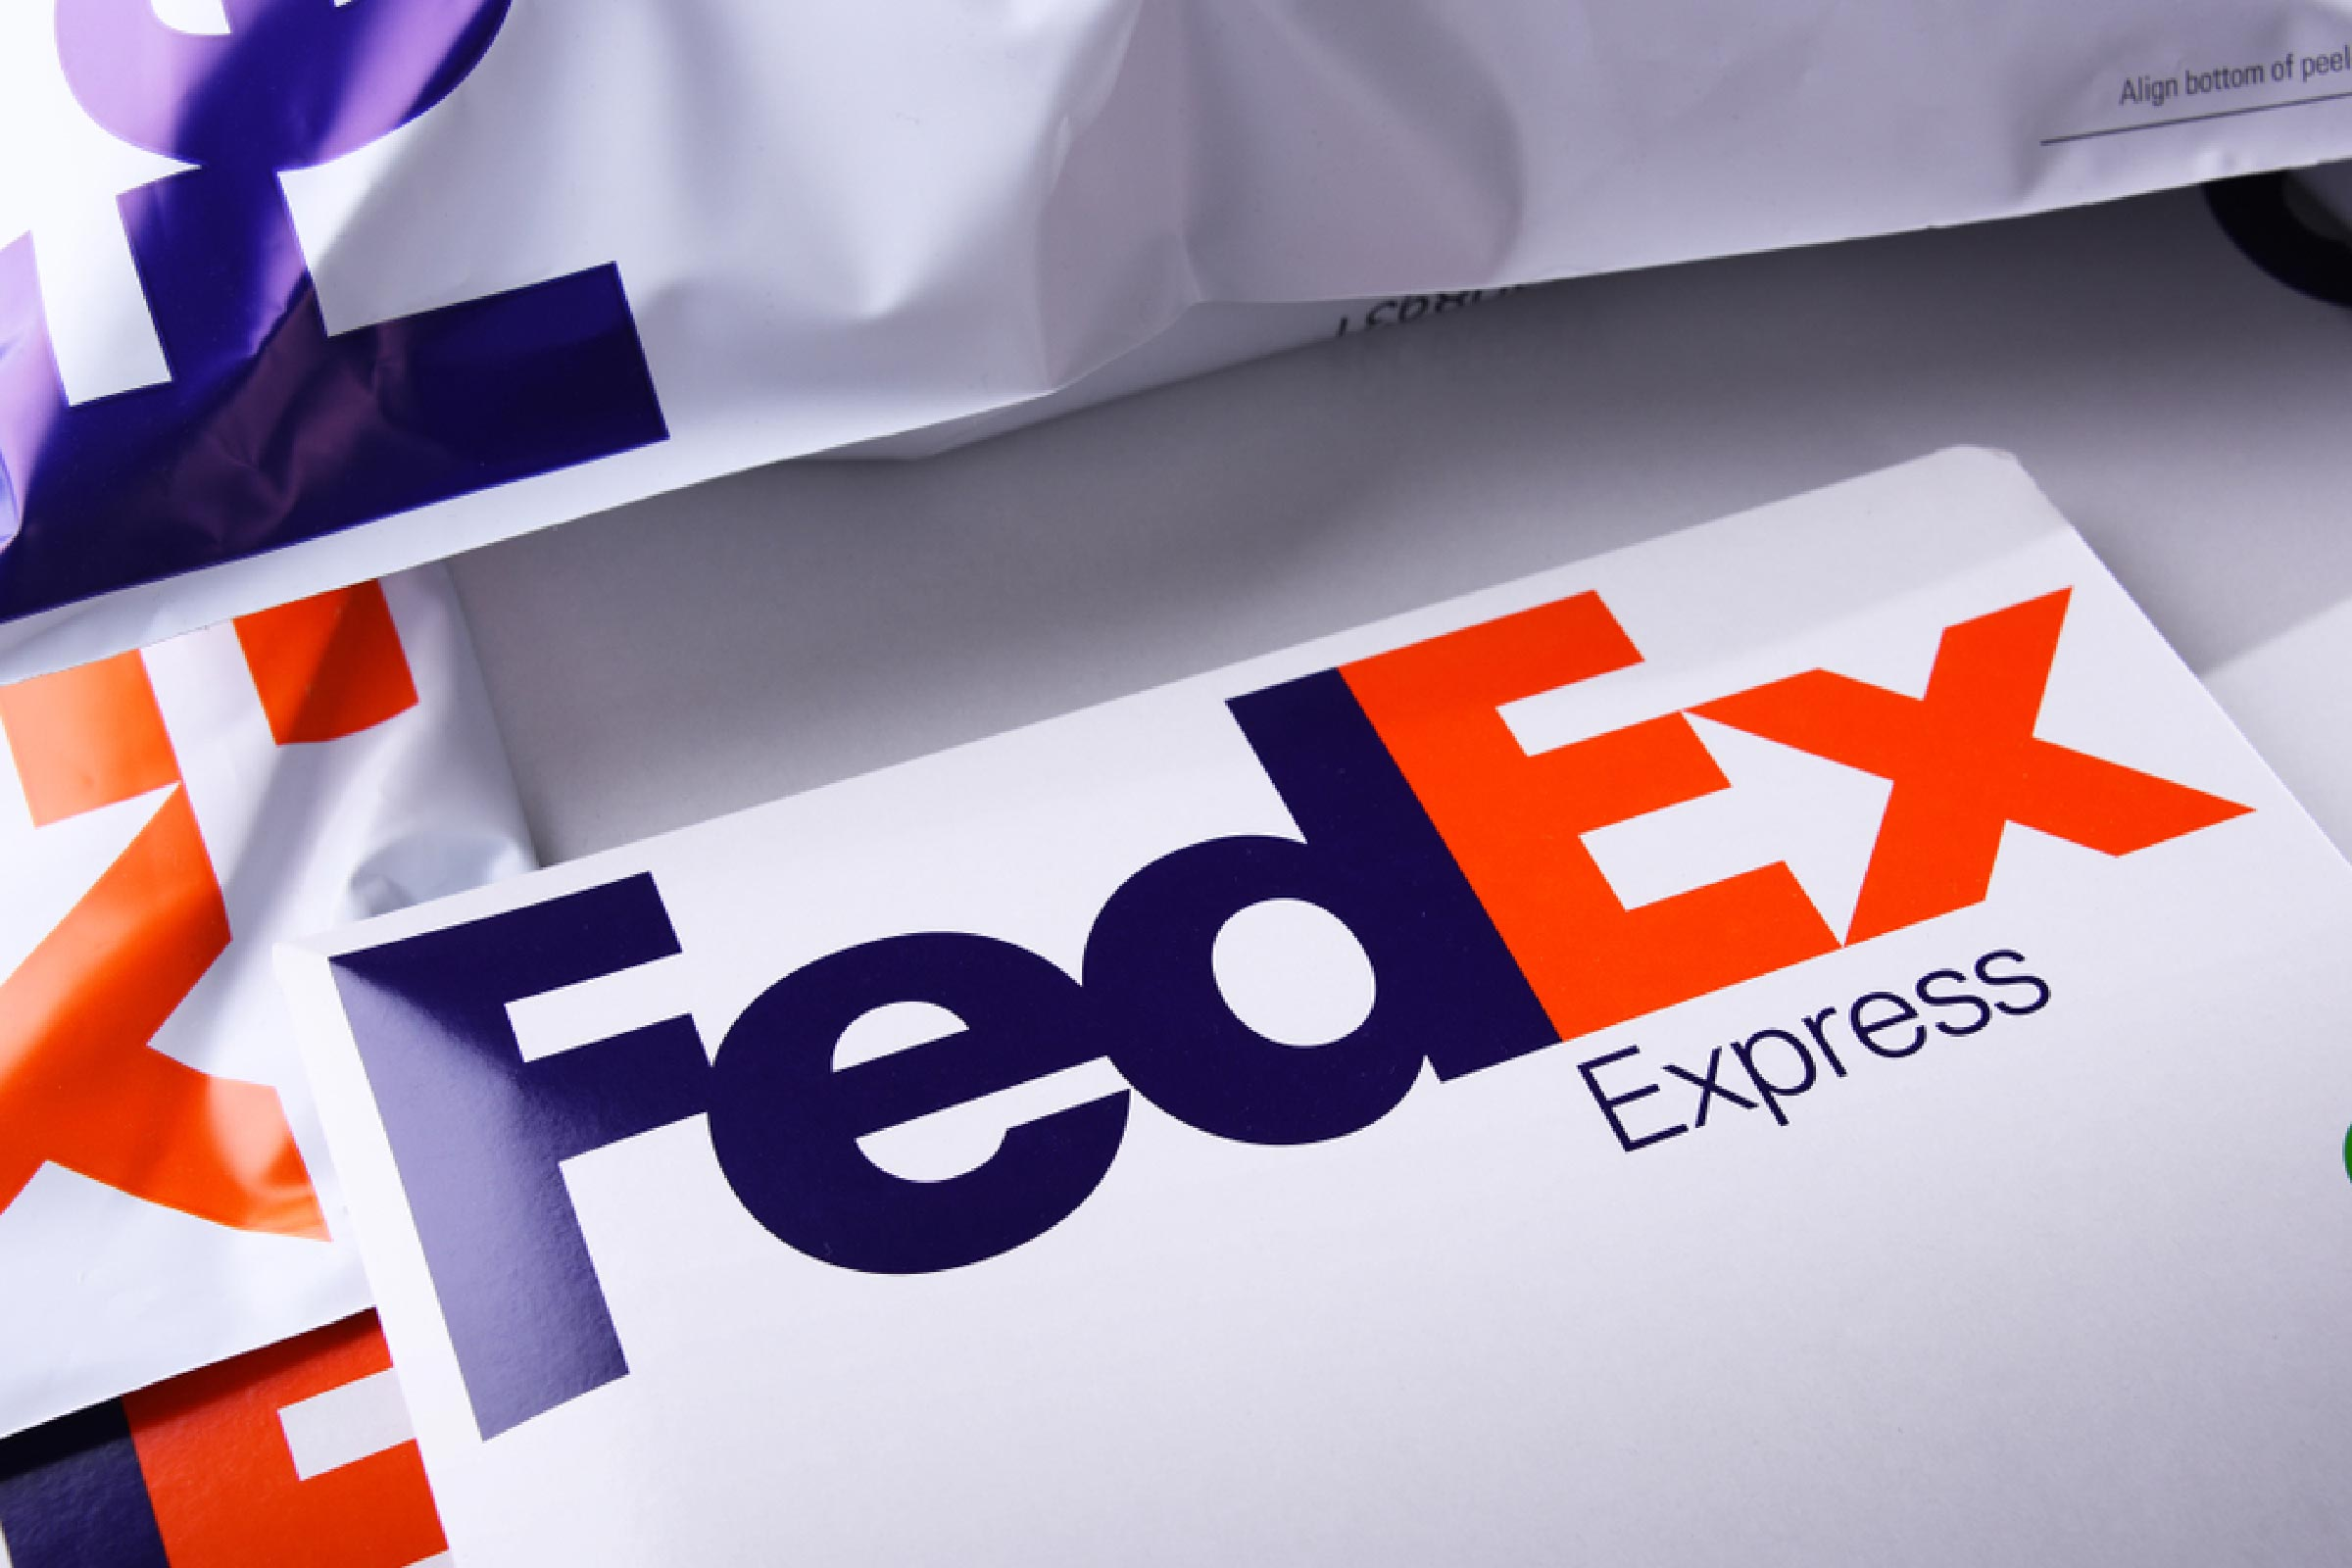 poznan-pol-apr-26-2018-envelopes-and-parcels-of-fedex-an-american-multinational-courier-delivery-services-company-headquartered-in-memphis-tennessee.jpg